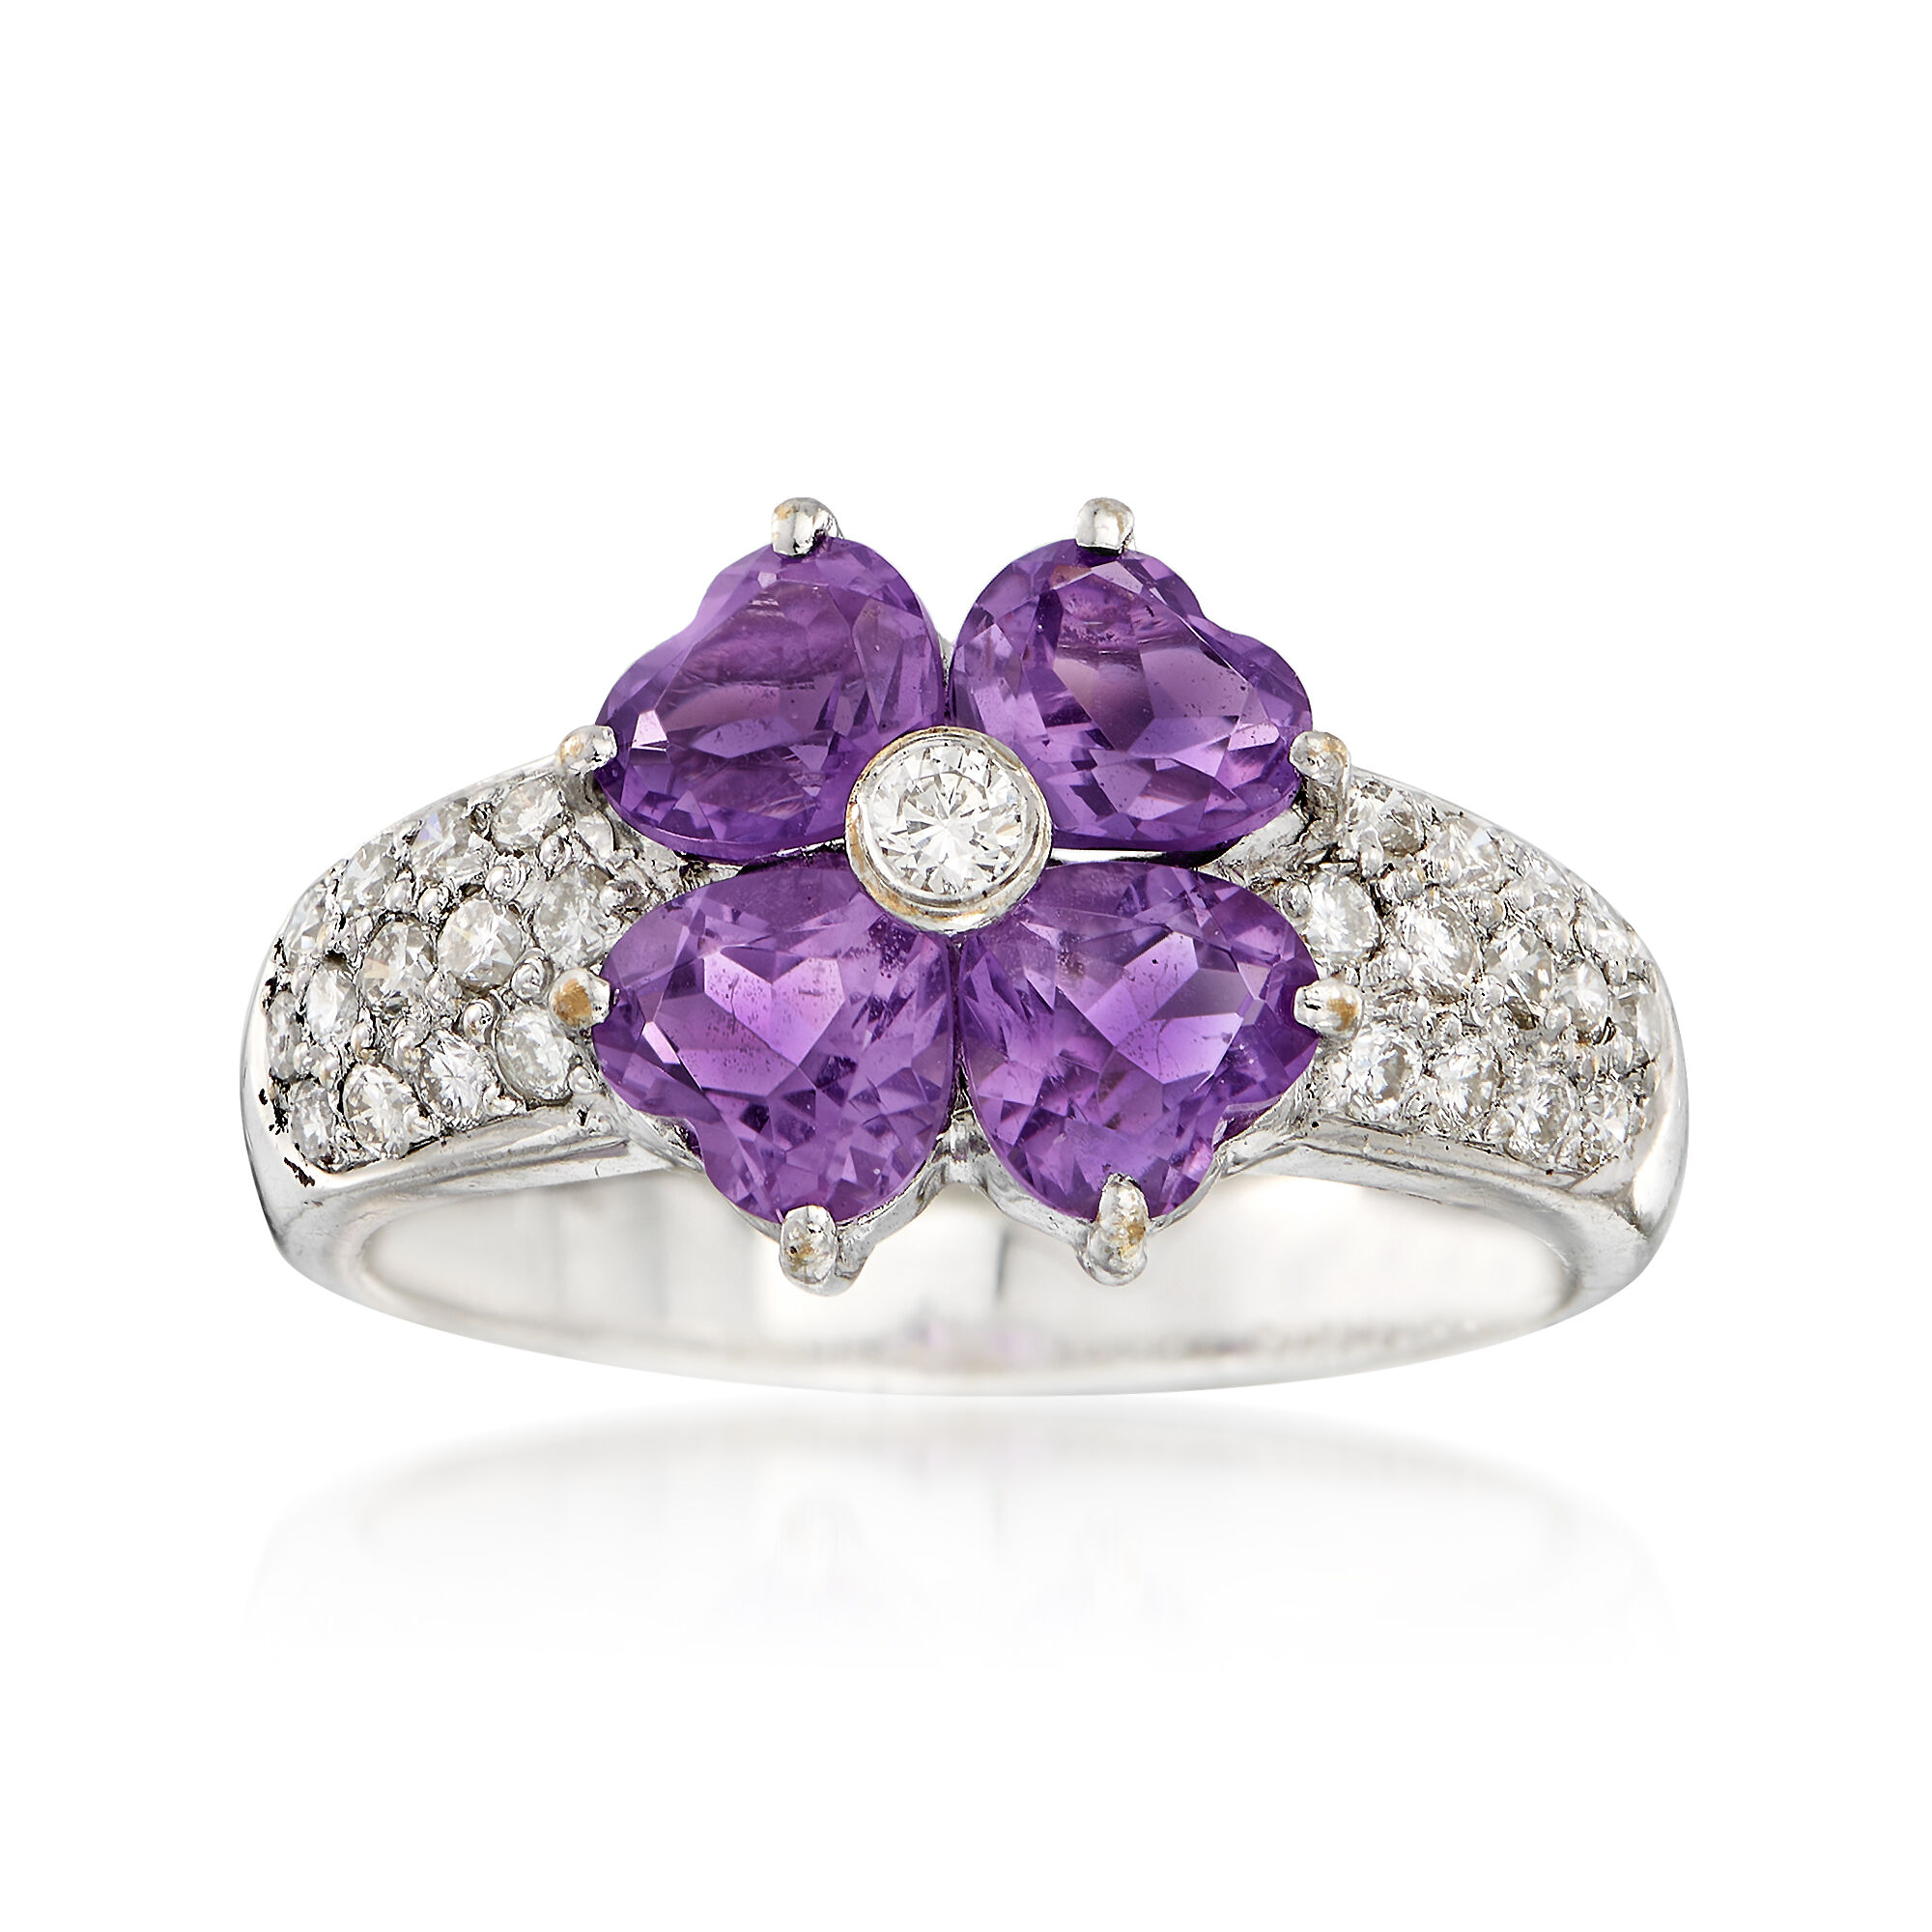 Brilliant Oval Cut Amethyst 18k White Gold Filled Flower Fhape Ladies Pendant Jewelry Other Wedding Jewelry